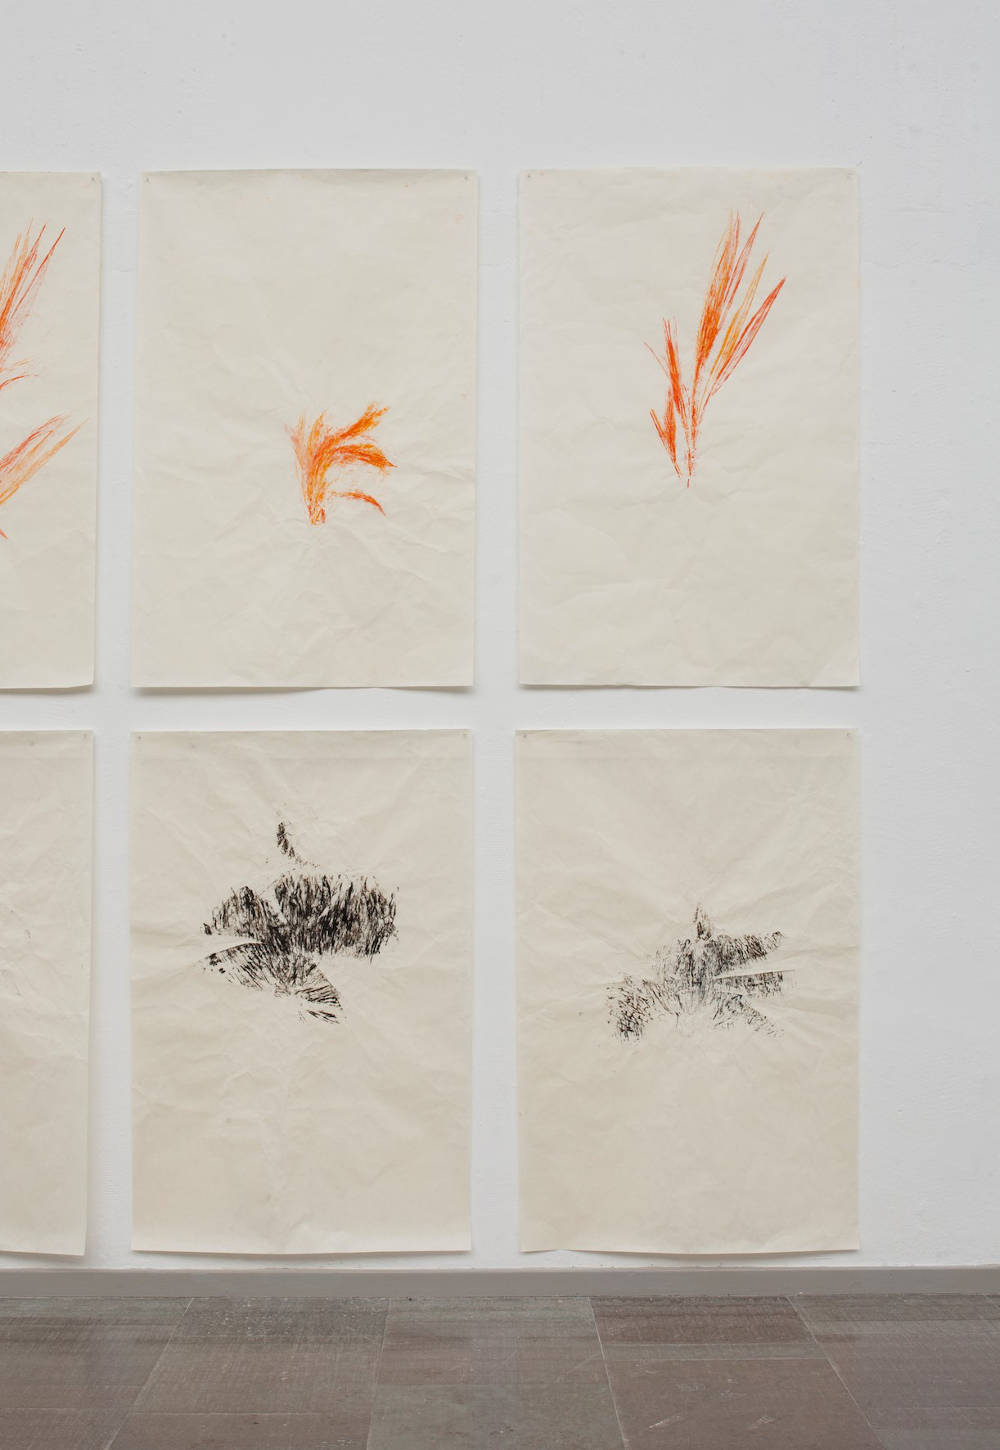 Simryn Gill, Travelling Light, 2017. Ink on paper, unique relief prints, 139.7 x 73.6 cm each. Courtesy the artist and Utopia Art Sydney